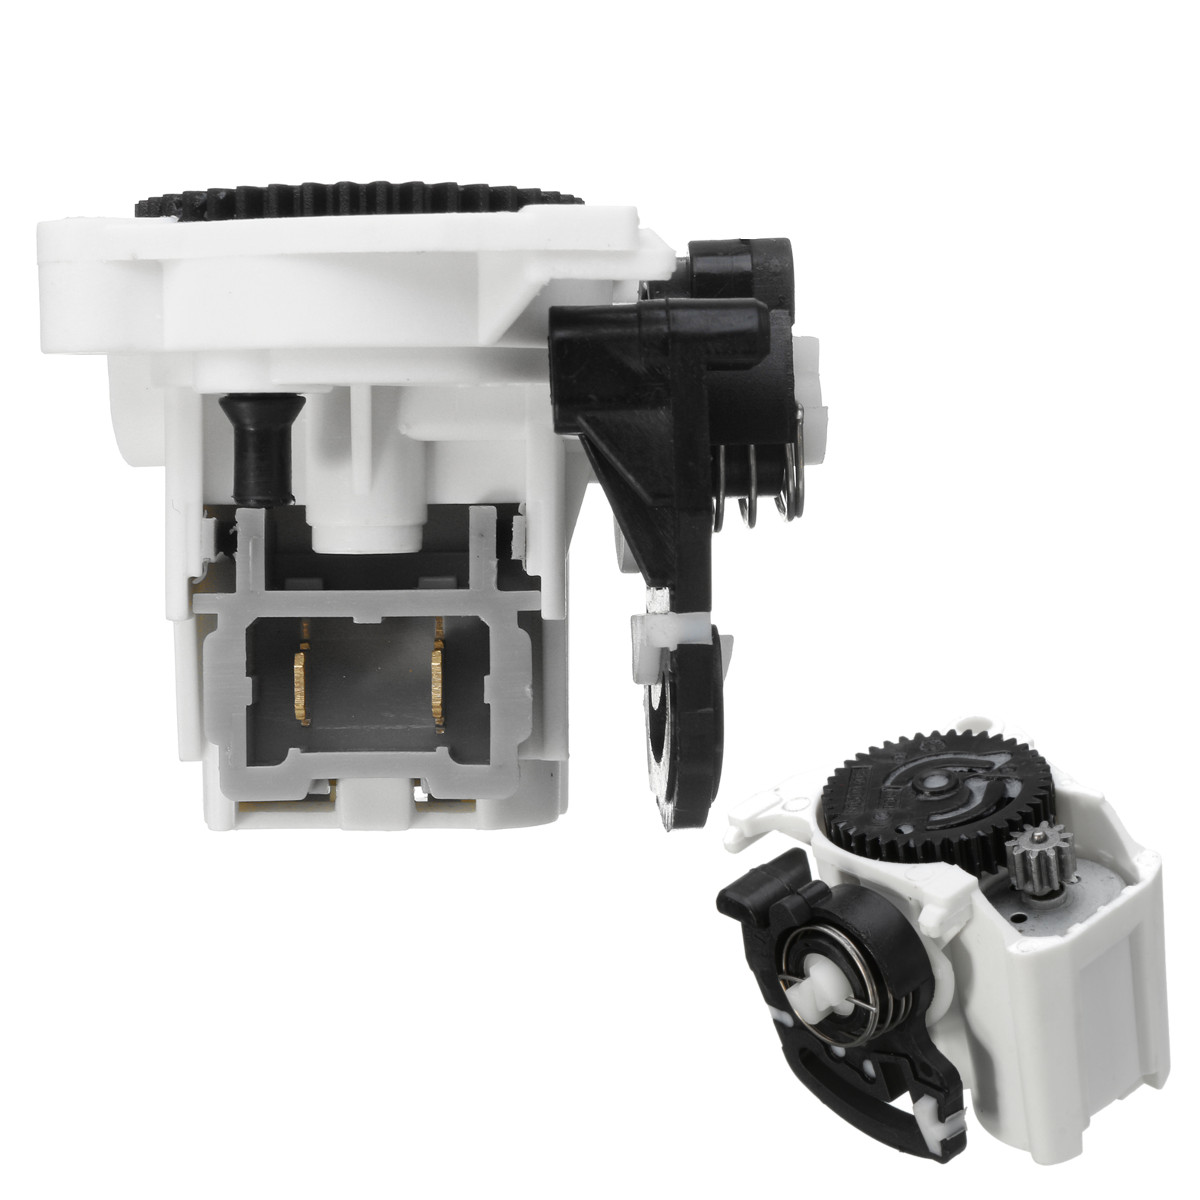 Trunk Central Lock Motor For Renault Clio 2 Megane Twingo Scenic 8200102583 7700435694 7701473742 N0501380